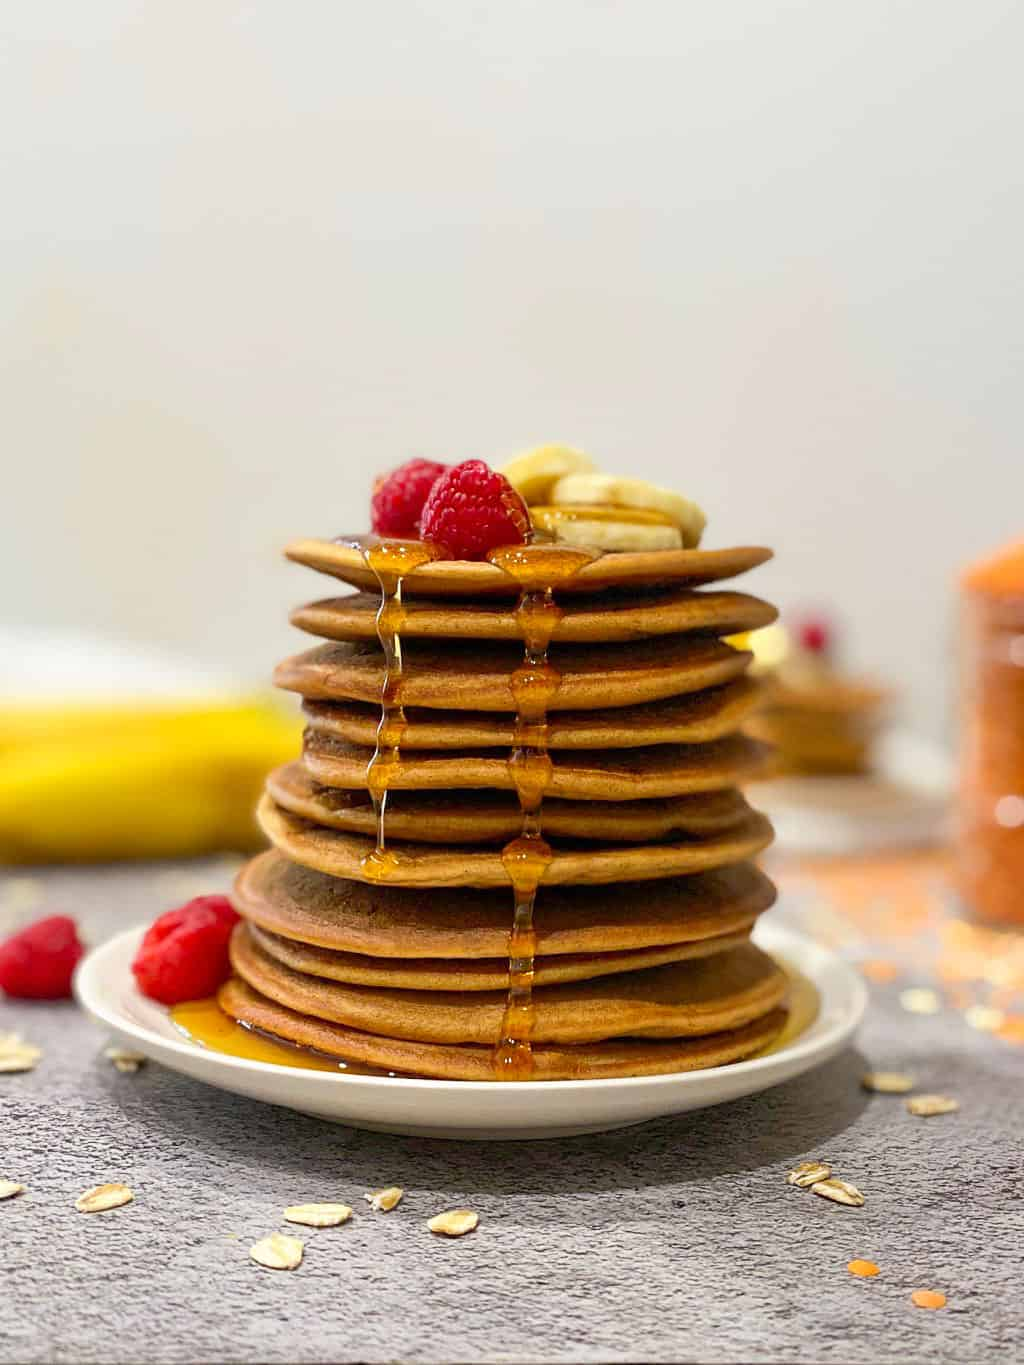 Stack of pancakes with maple syrup dripping down the sides and berries on top.